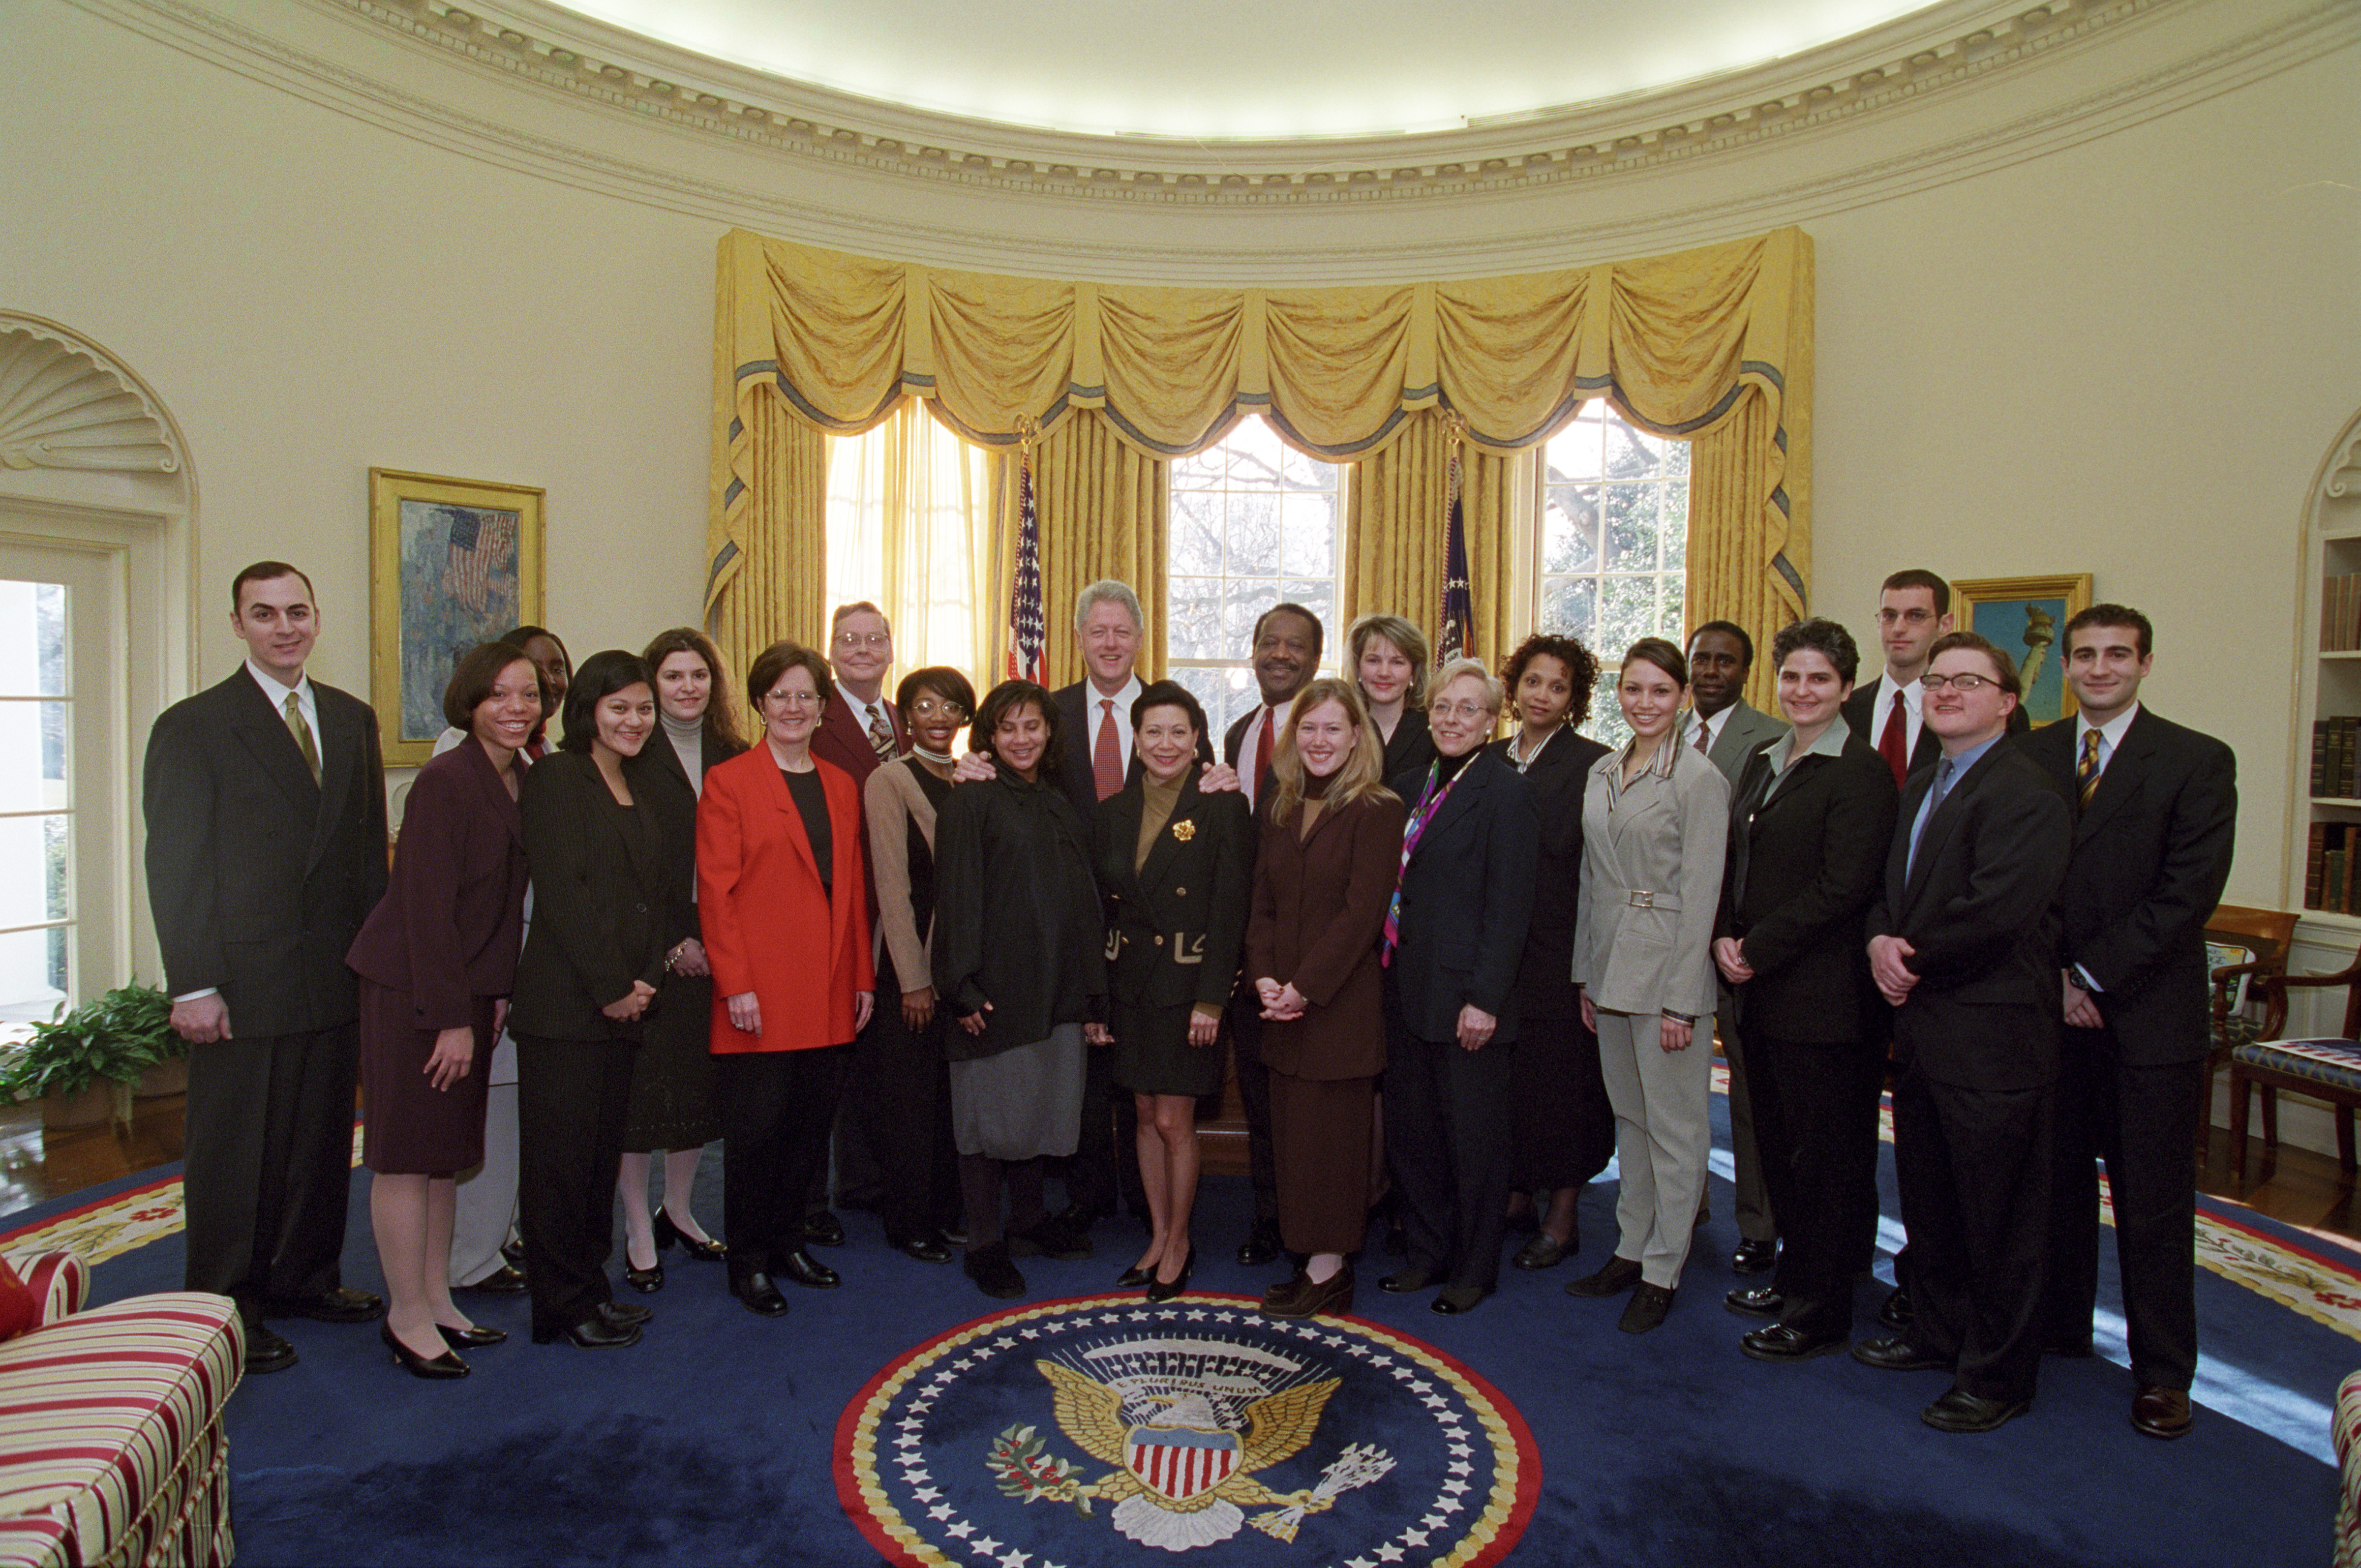 President Clinton joins the staff of the Presidential Personnel Office for a group photo in the Oval Office